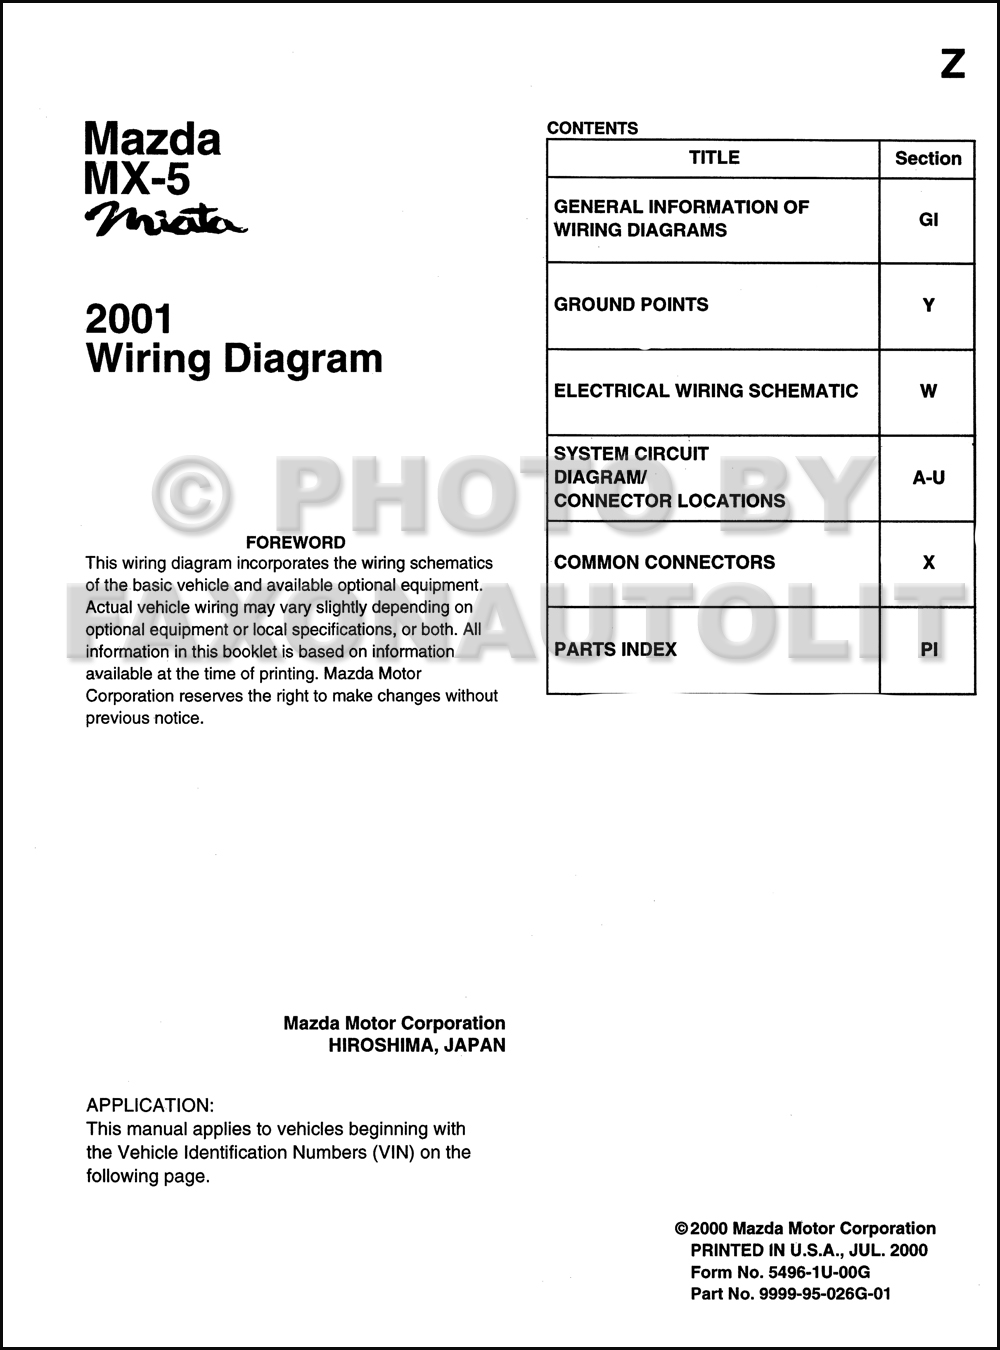 2001 Mazda MX-5 Miata Wiring Diagram Manual Original. click on thumbnail to  zoom